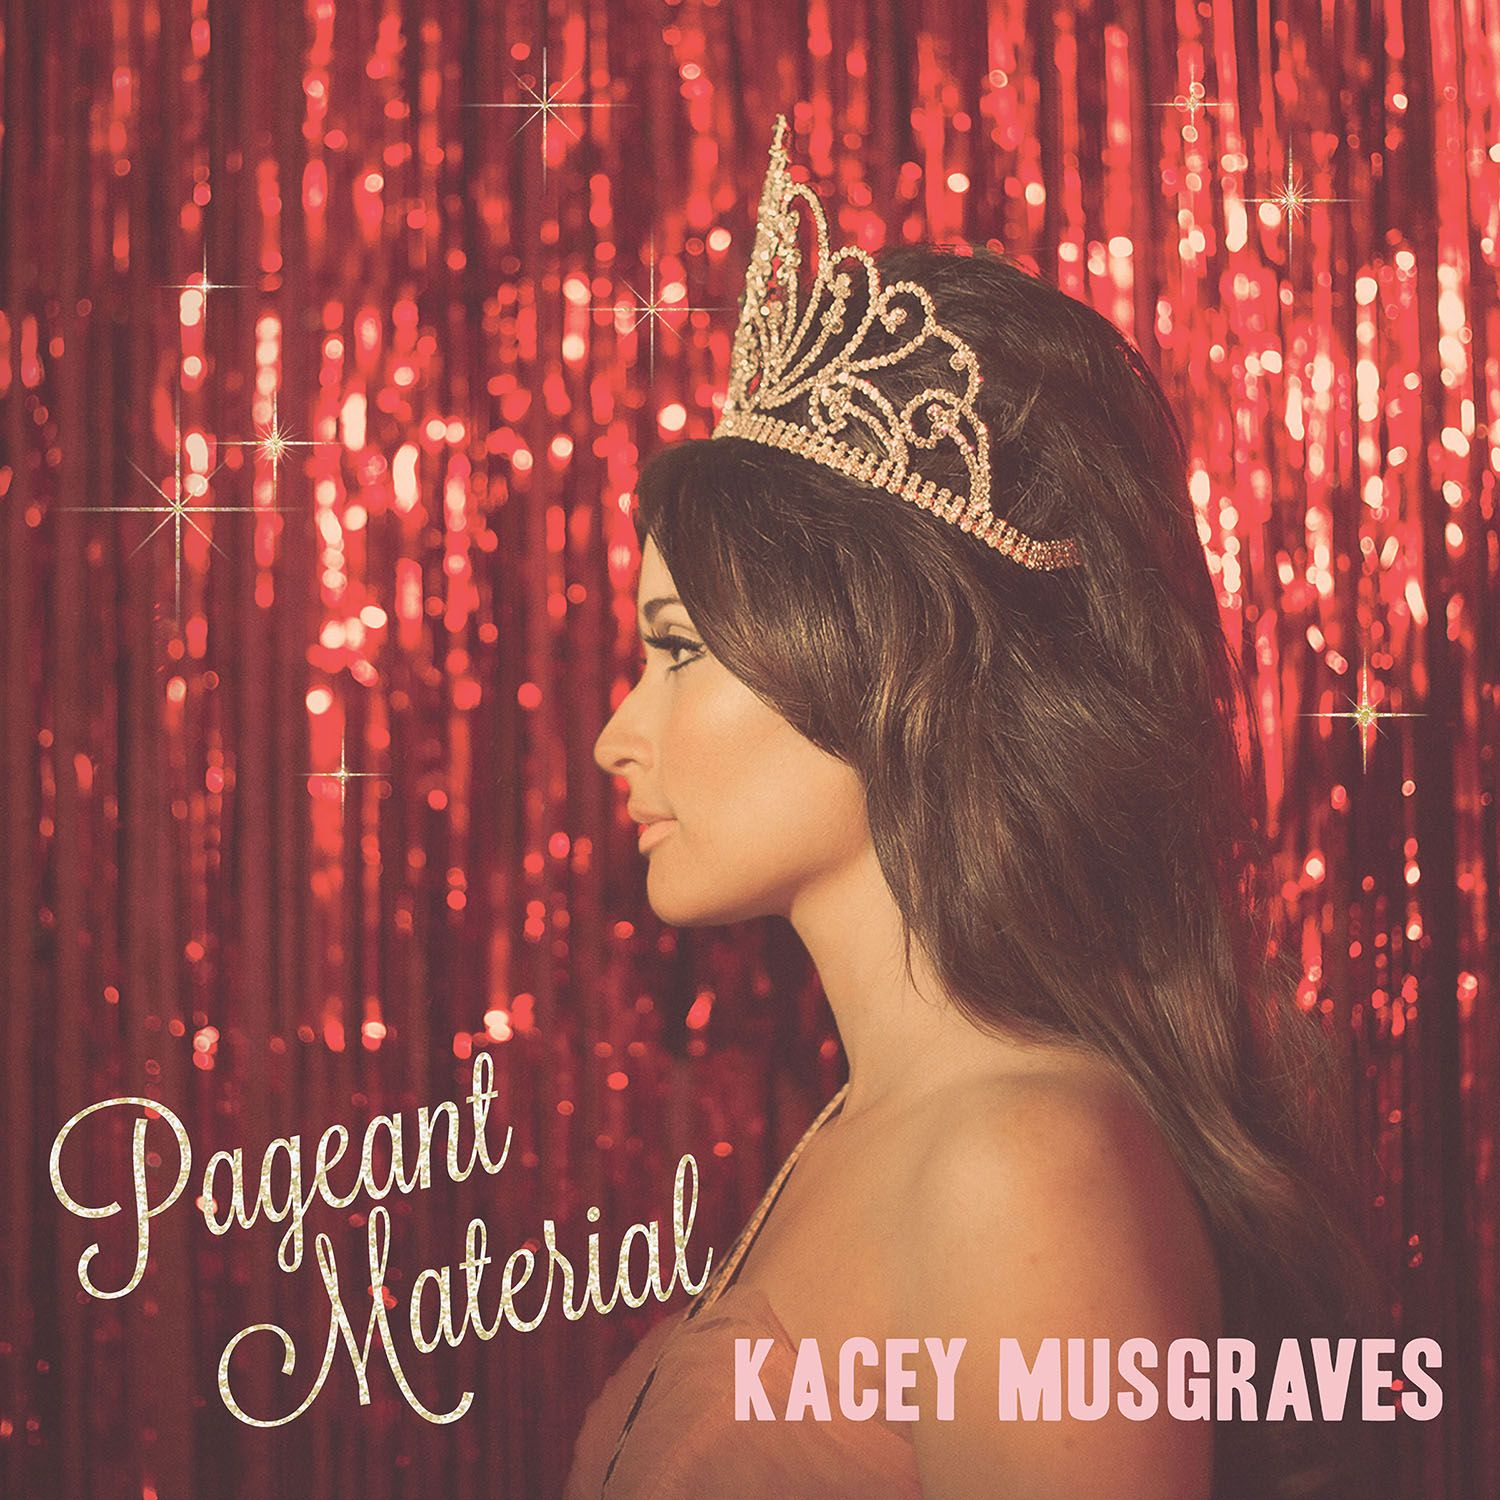 Kacey Musgraves - Pageant Material - Album Cover